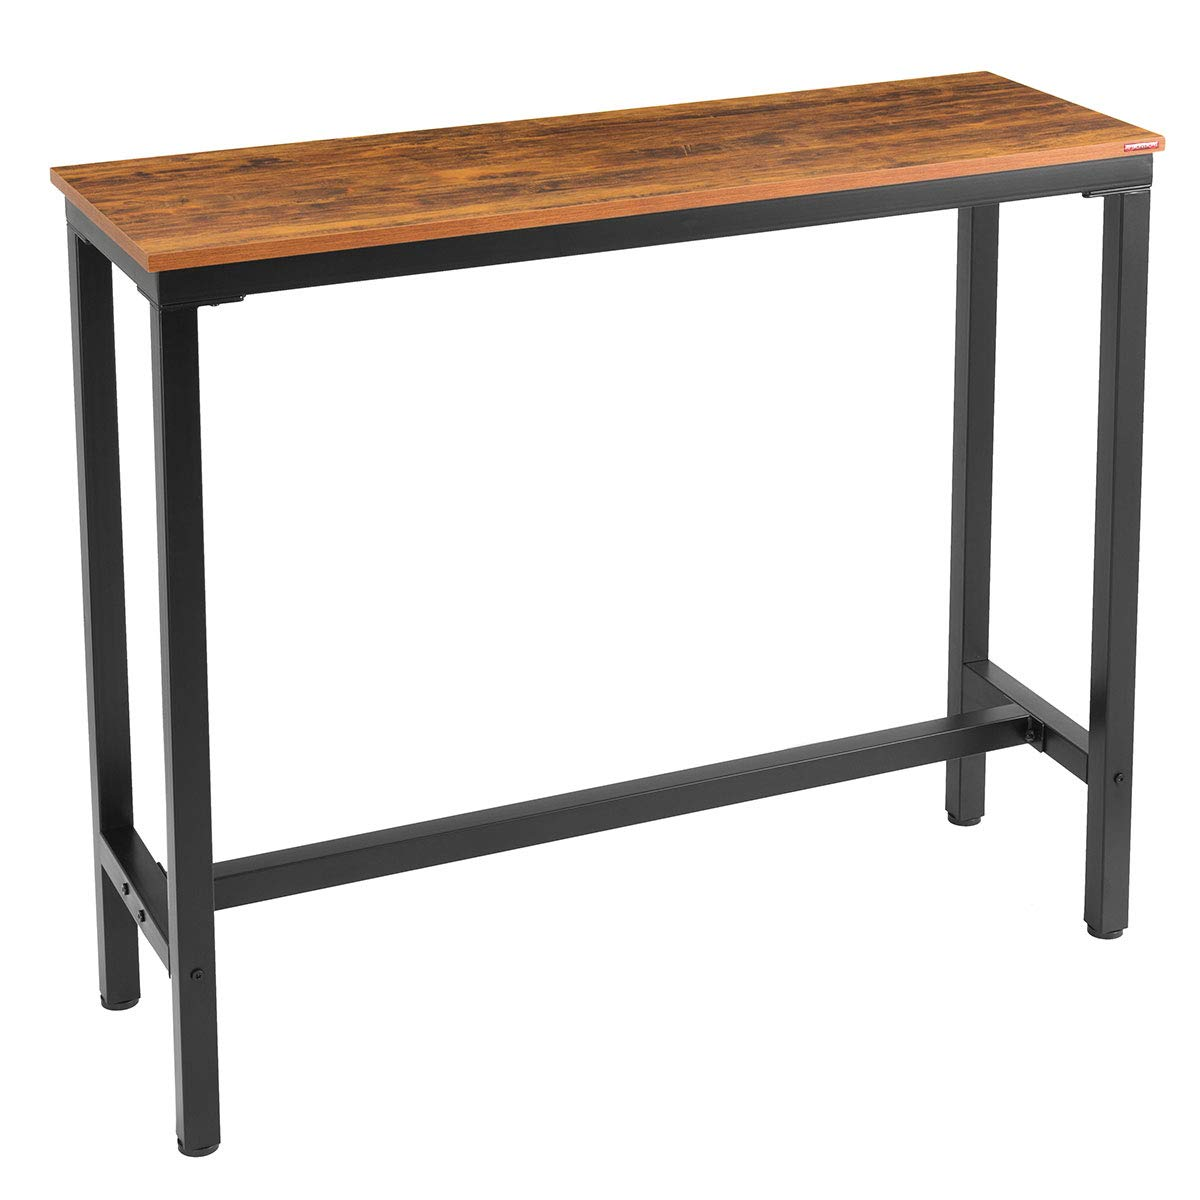 Mr IRONSTONE Bar Table 47'' Pub Dining Height Table Bistro Table with Vintage Textured Top (Indoor USE ONLY) by Mr IRONSTONE